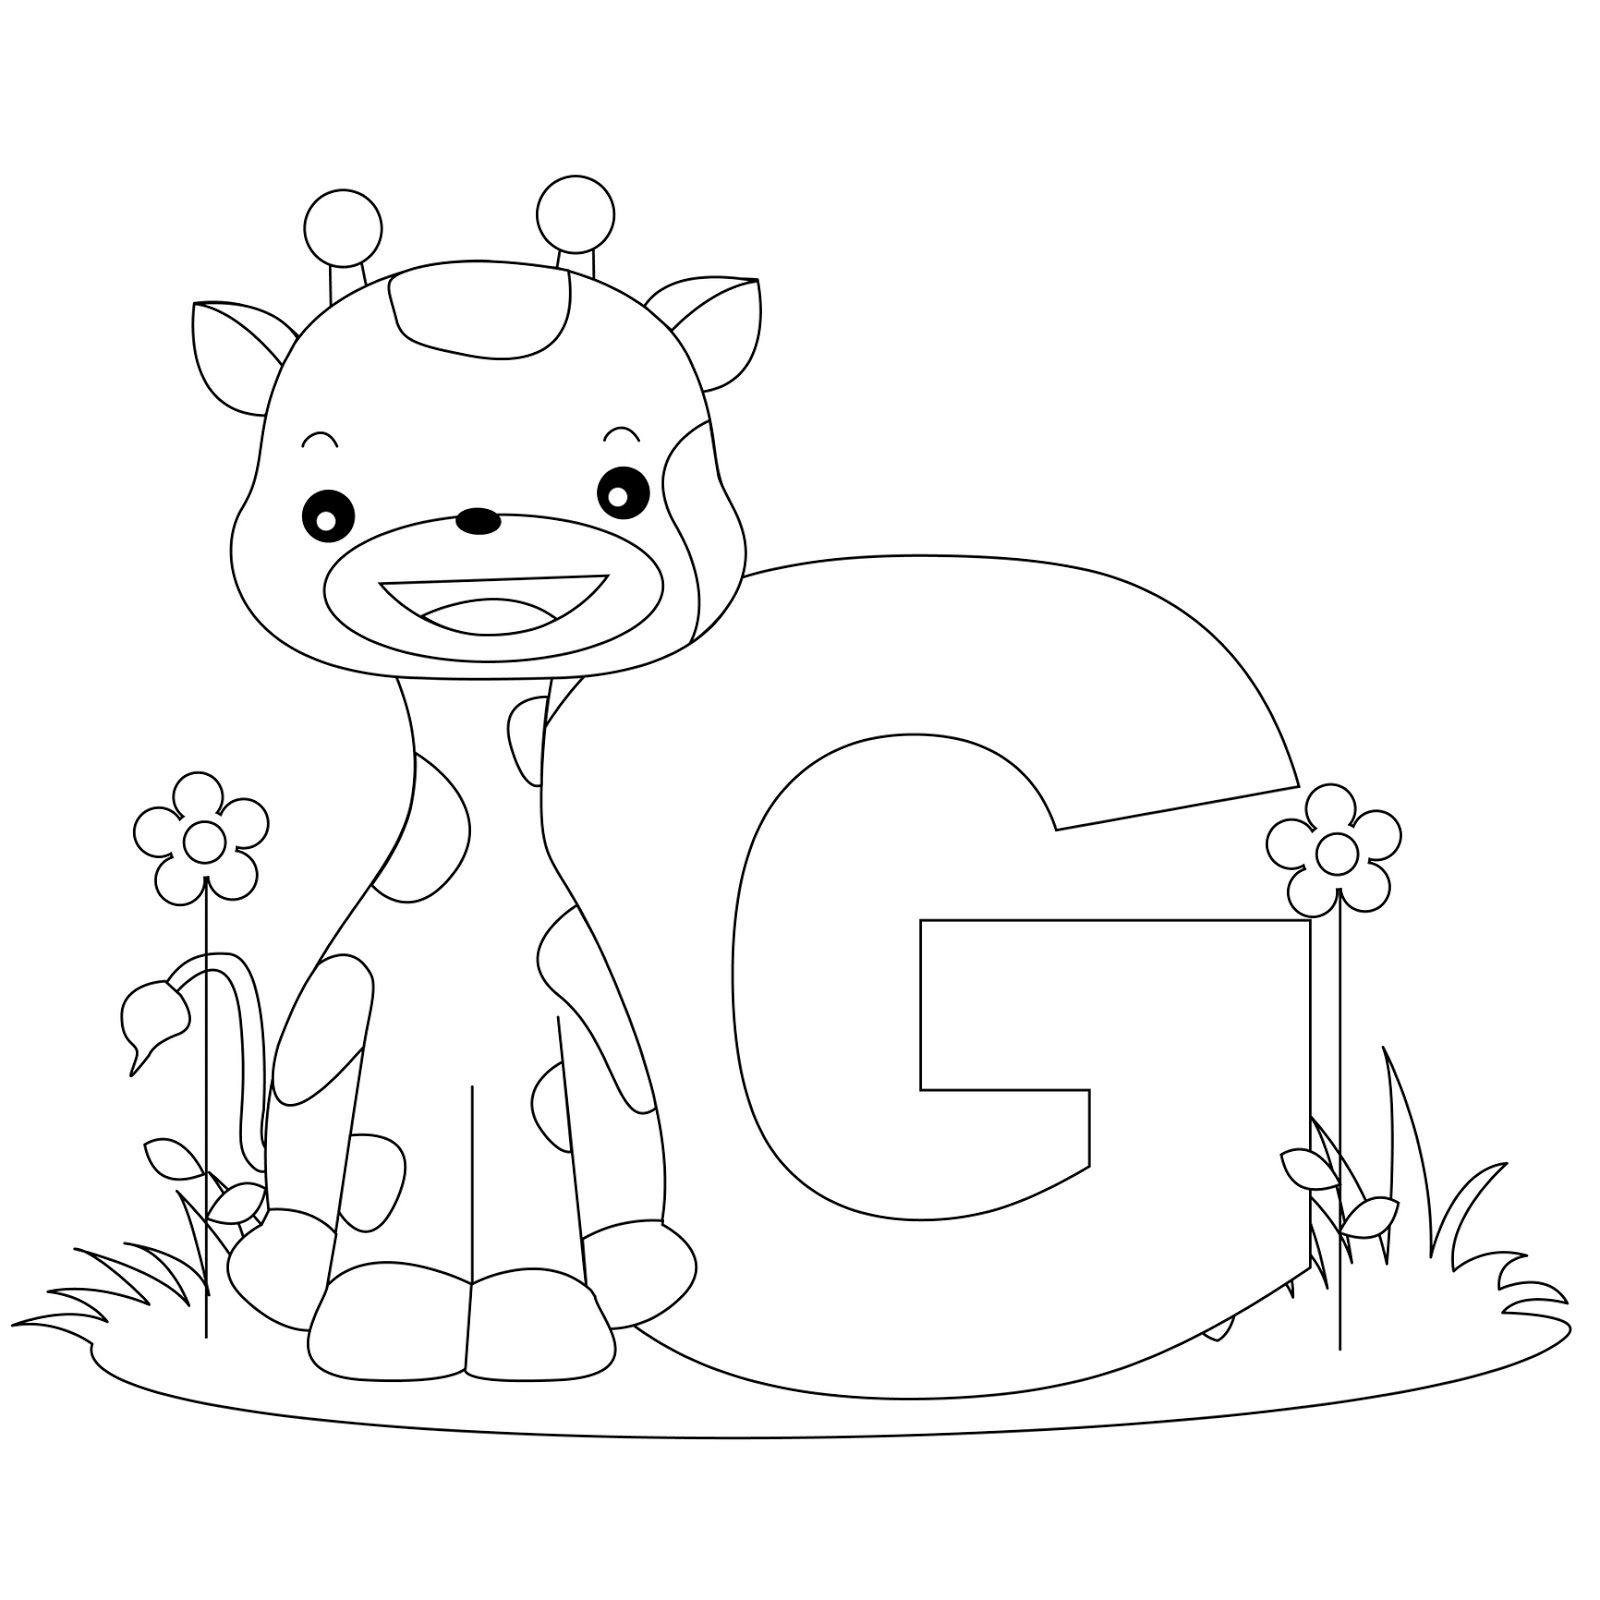 alphabet coloring pages printable - Color the Alphabet Alphabet Coloring Pages